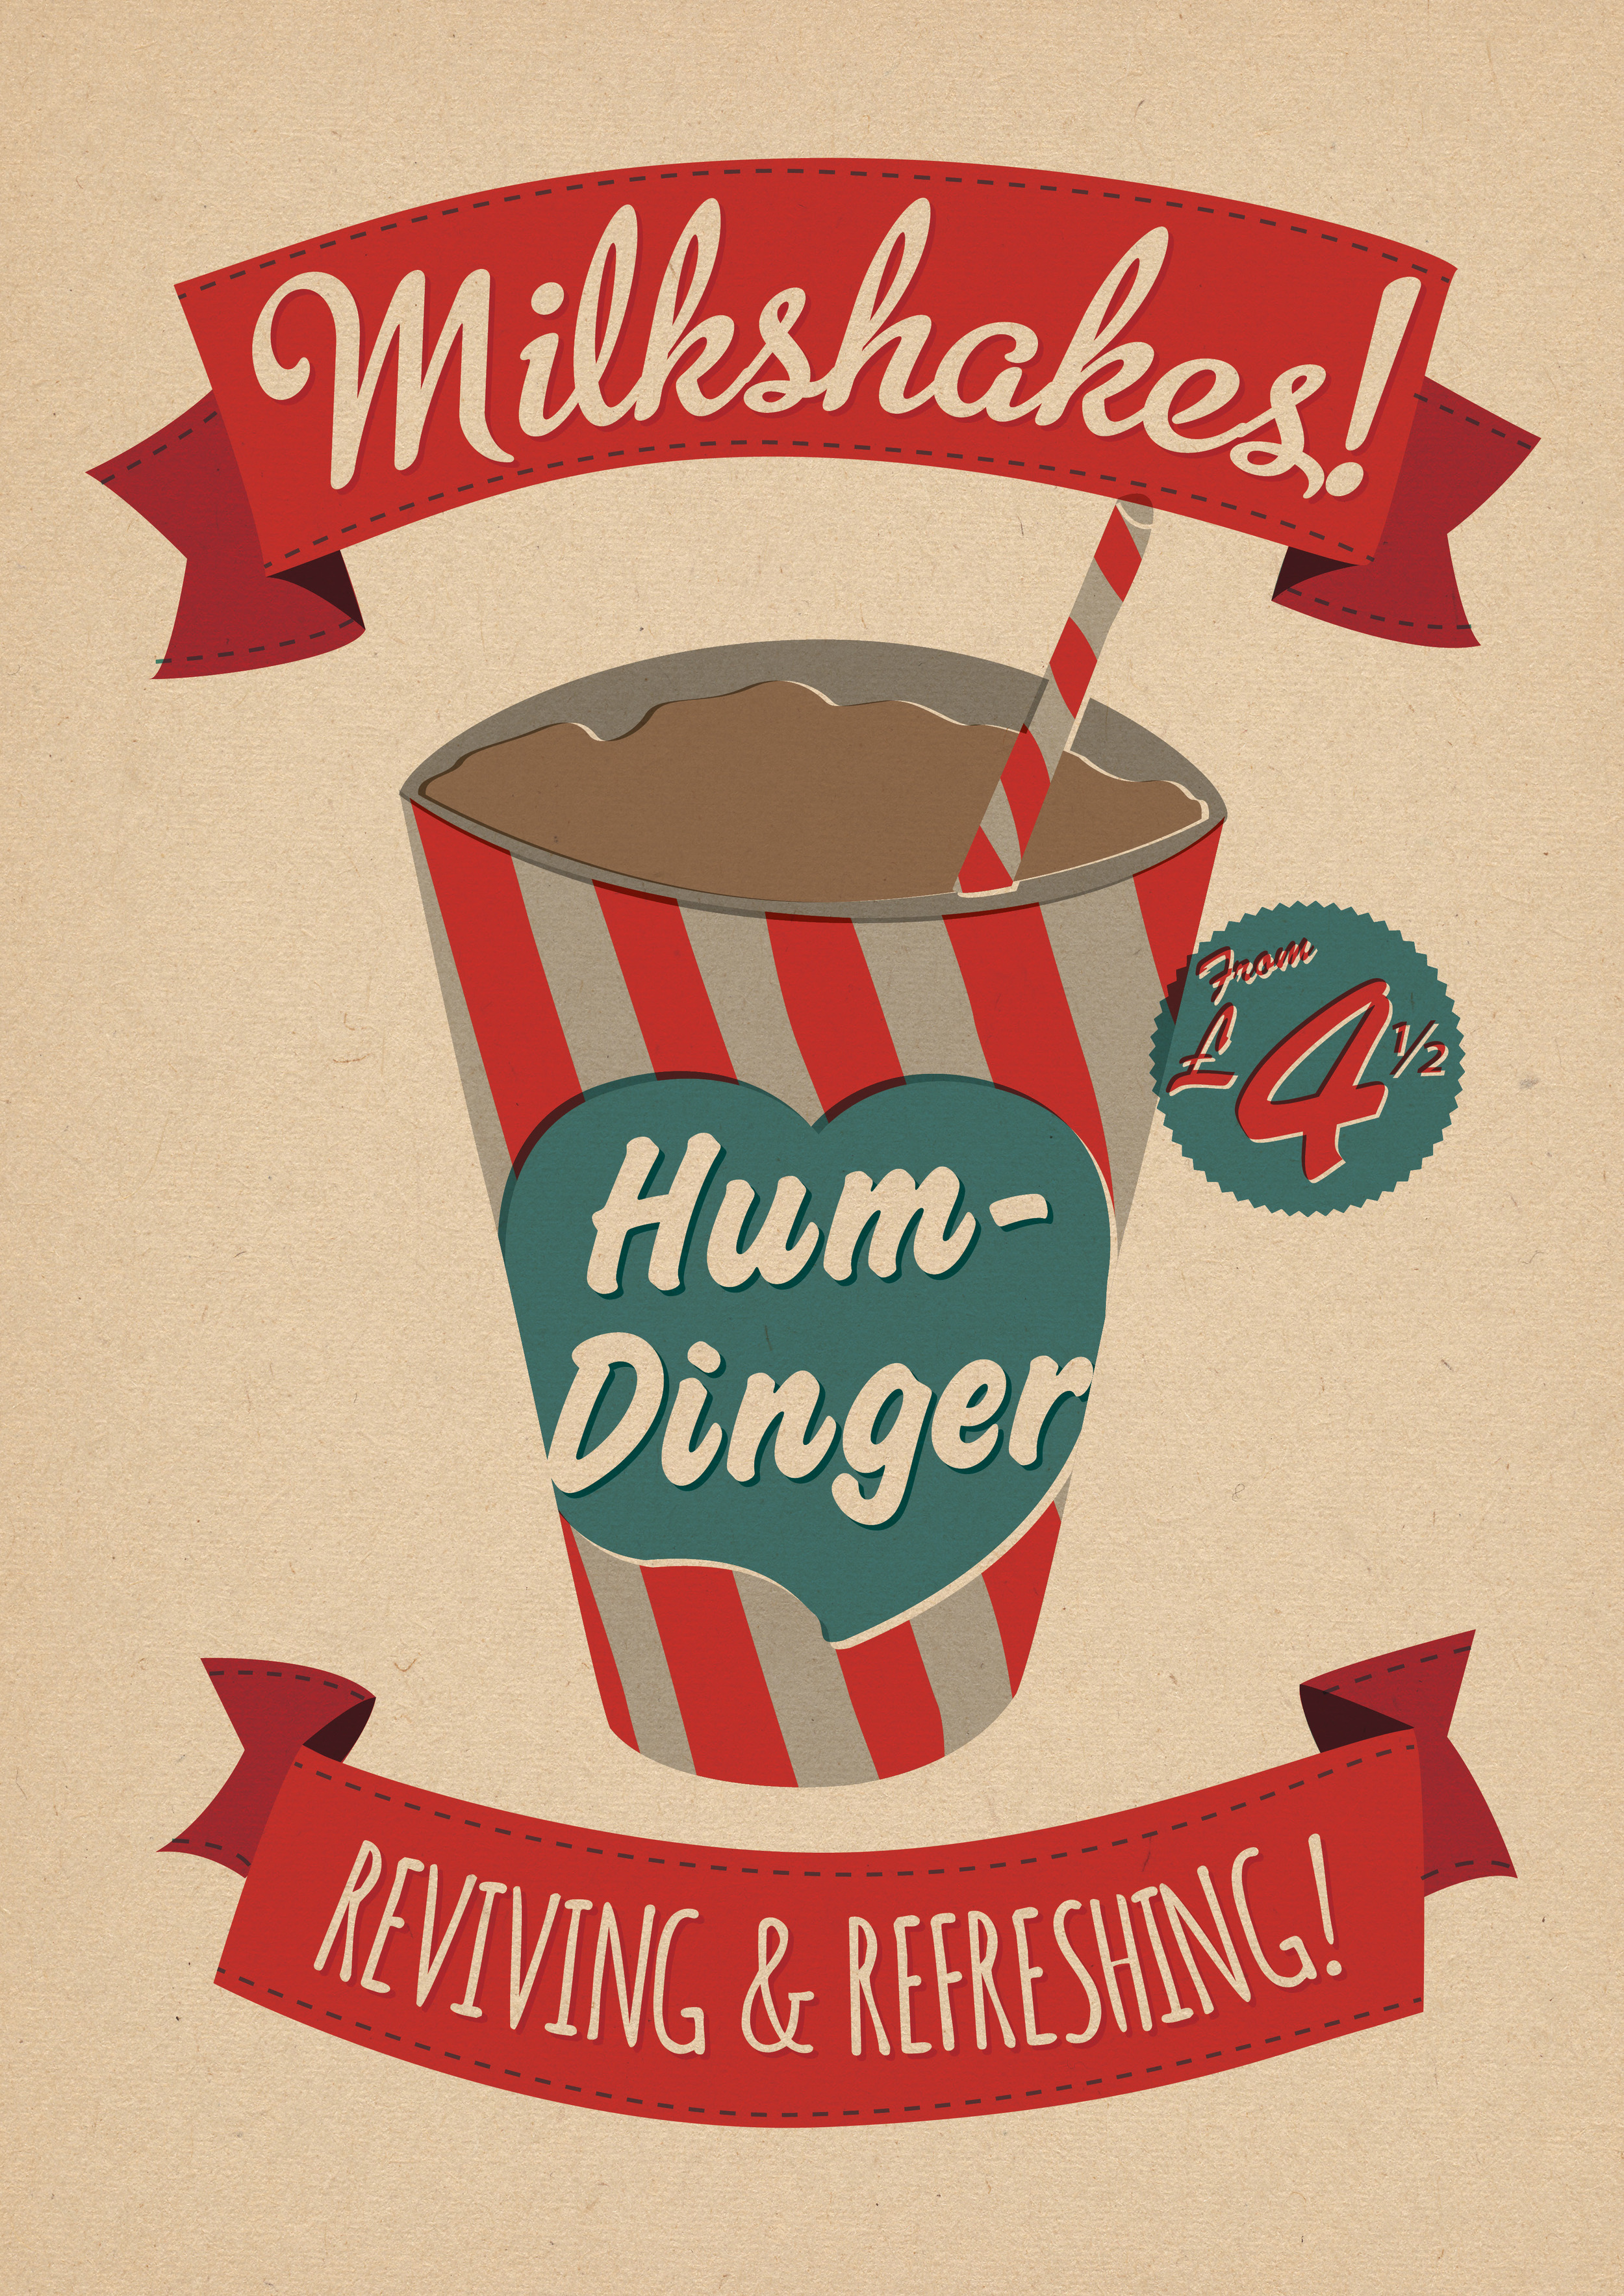 FEATURED DRINKS POSTER